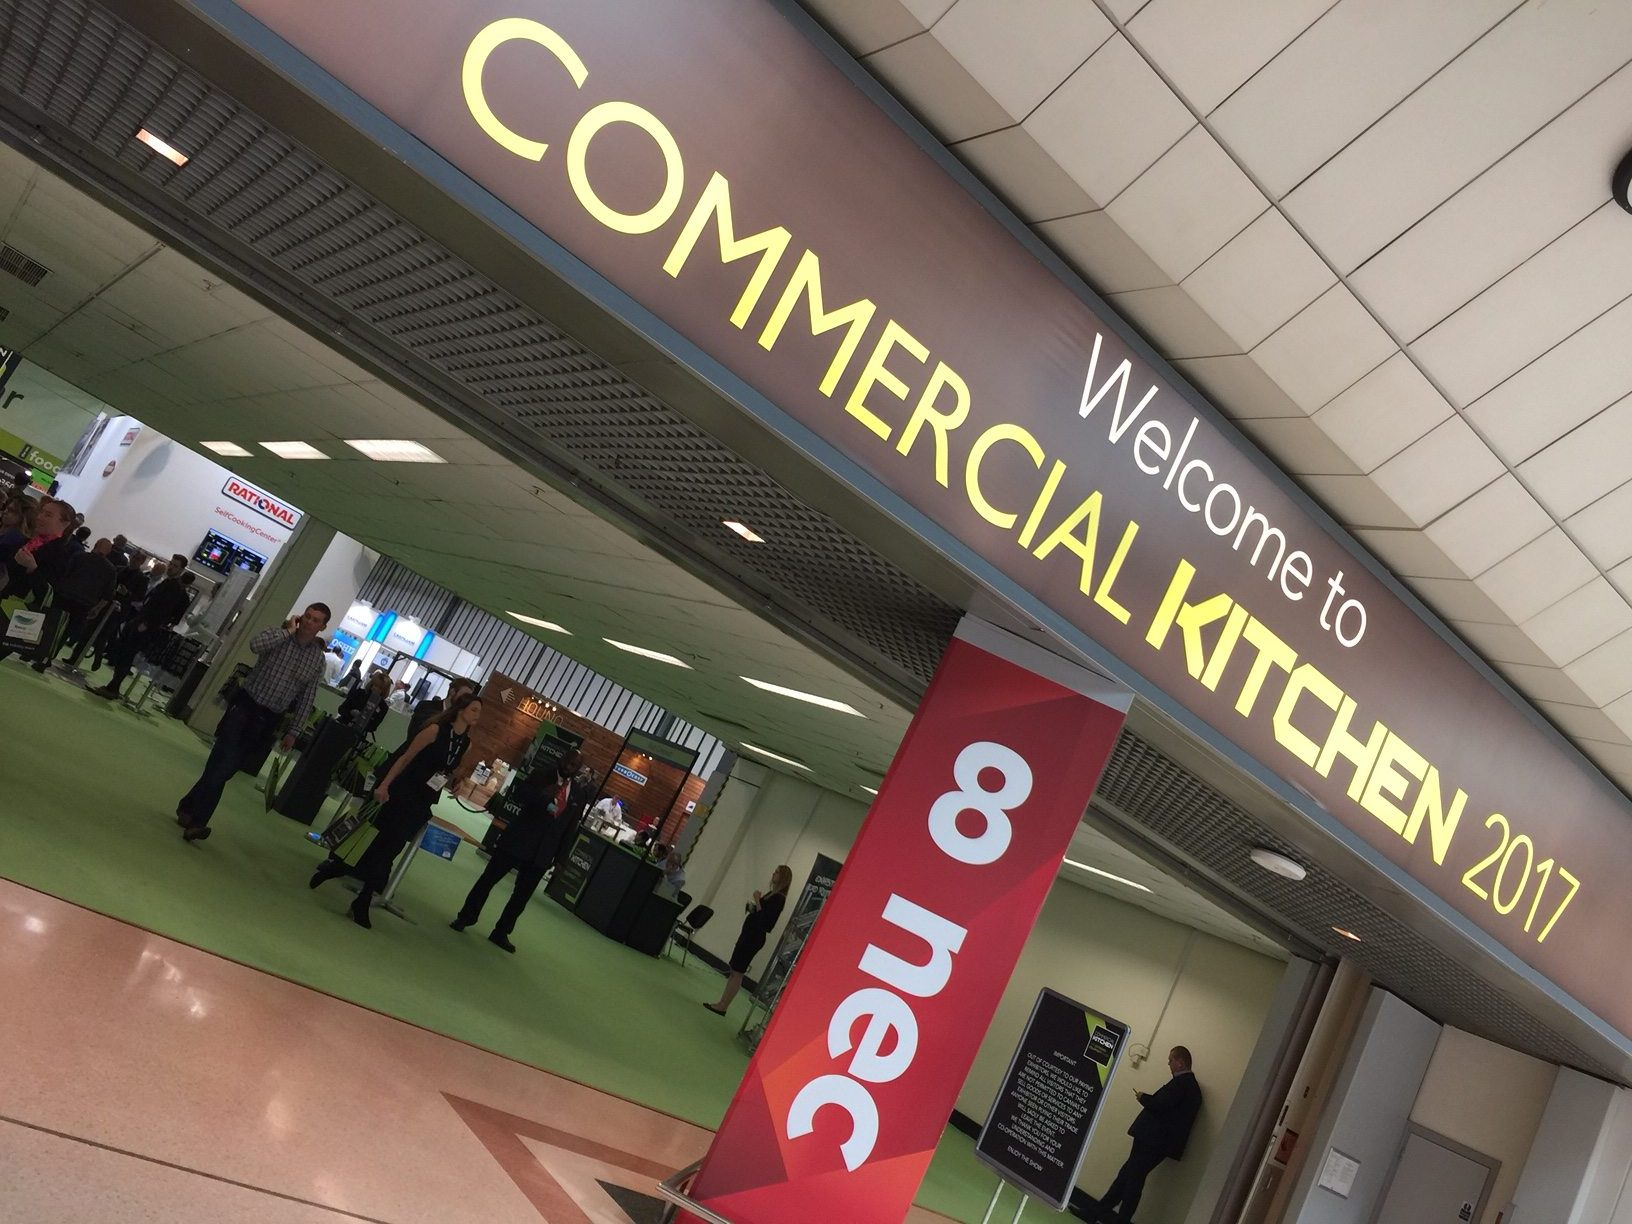 C&C Catering Equipment Ltd Commercial Kitchen Show